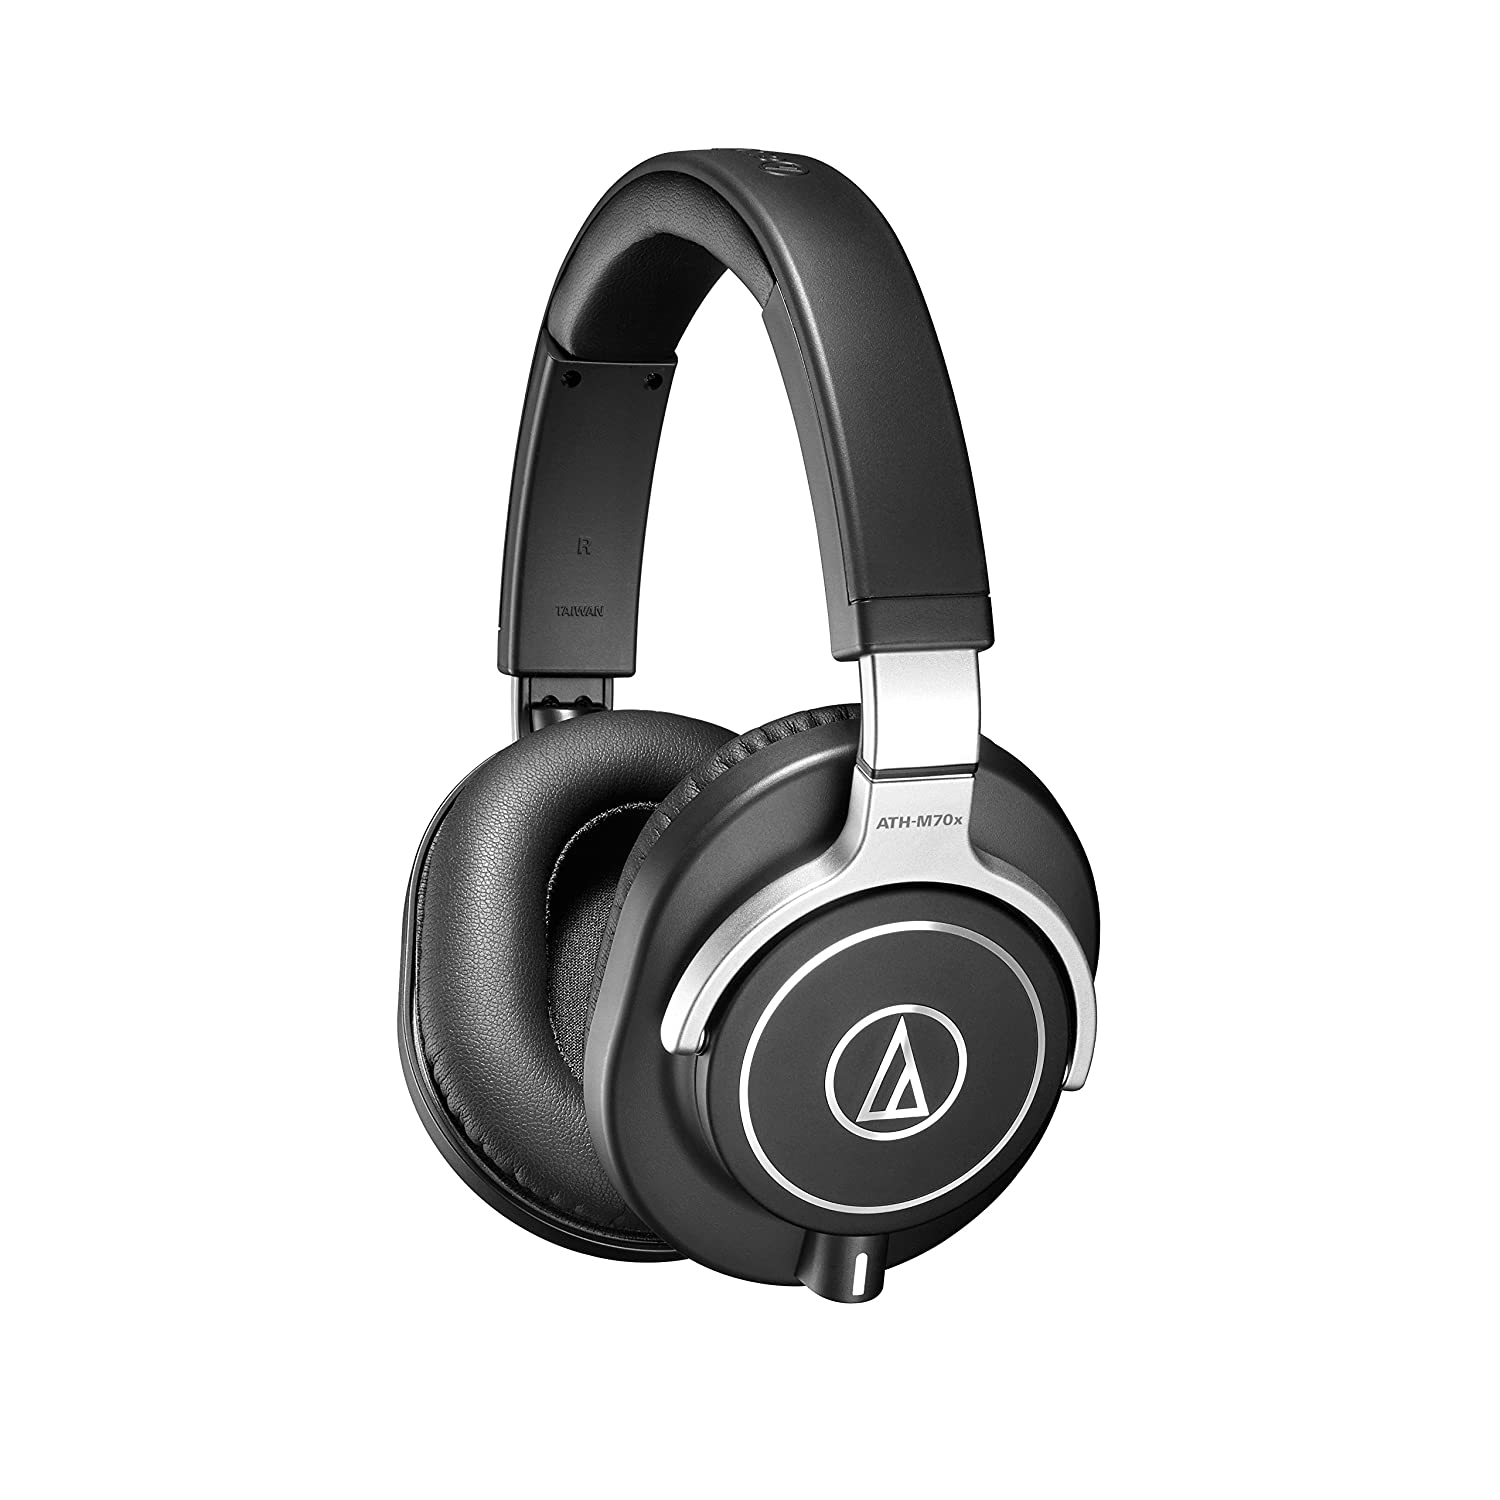 Audio-Technica ATH-M70x Headphones Black Friday Deal 2019